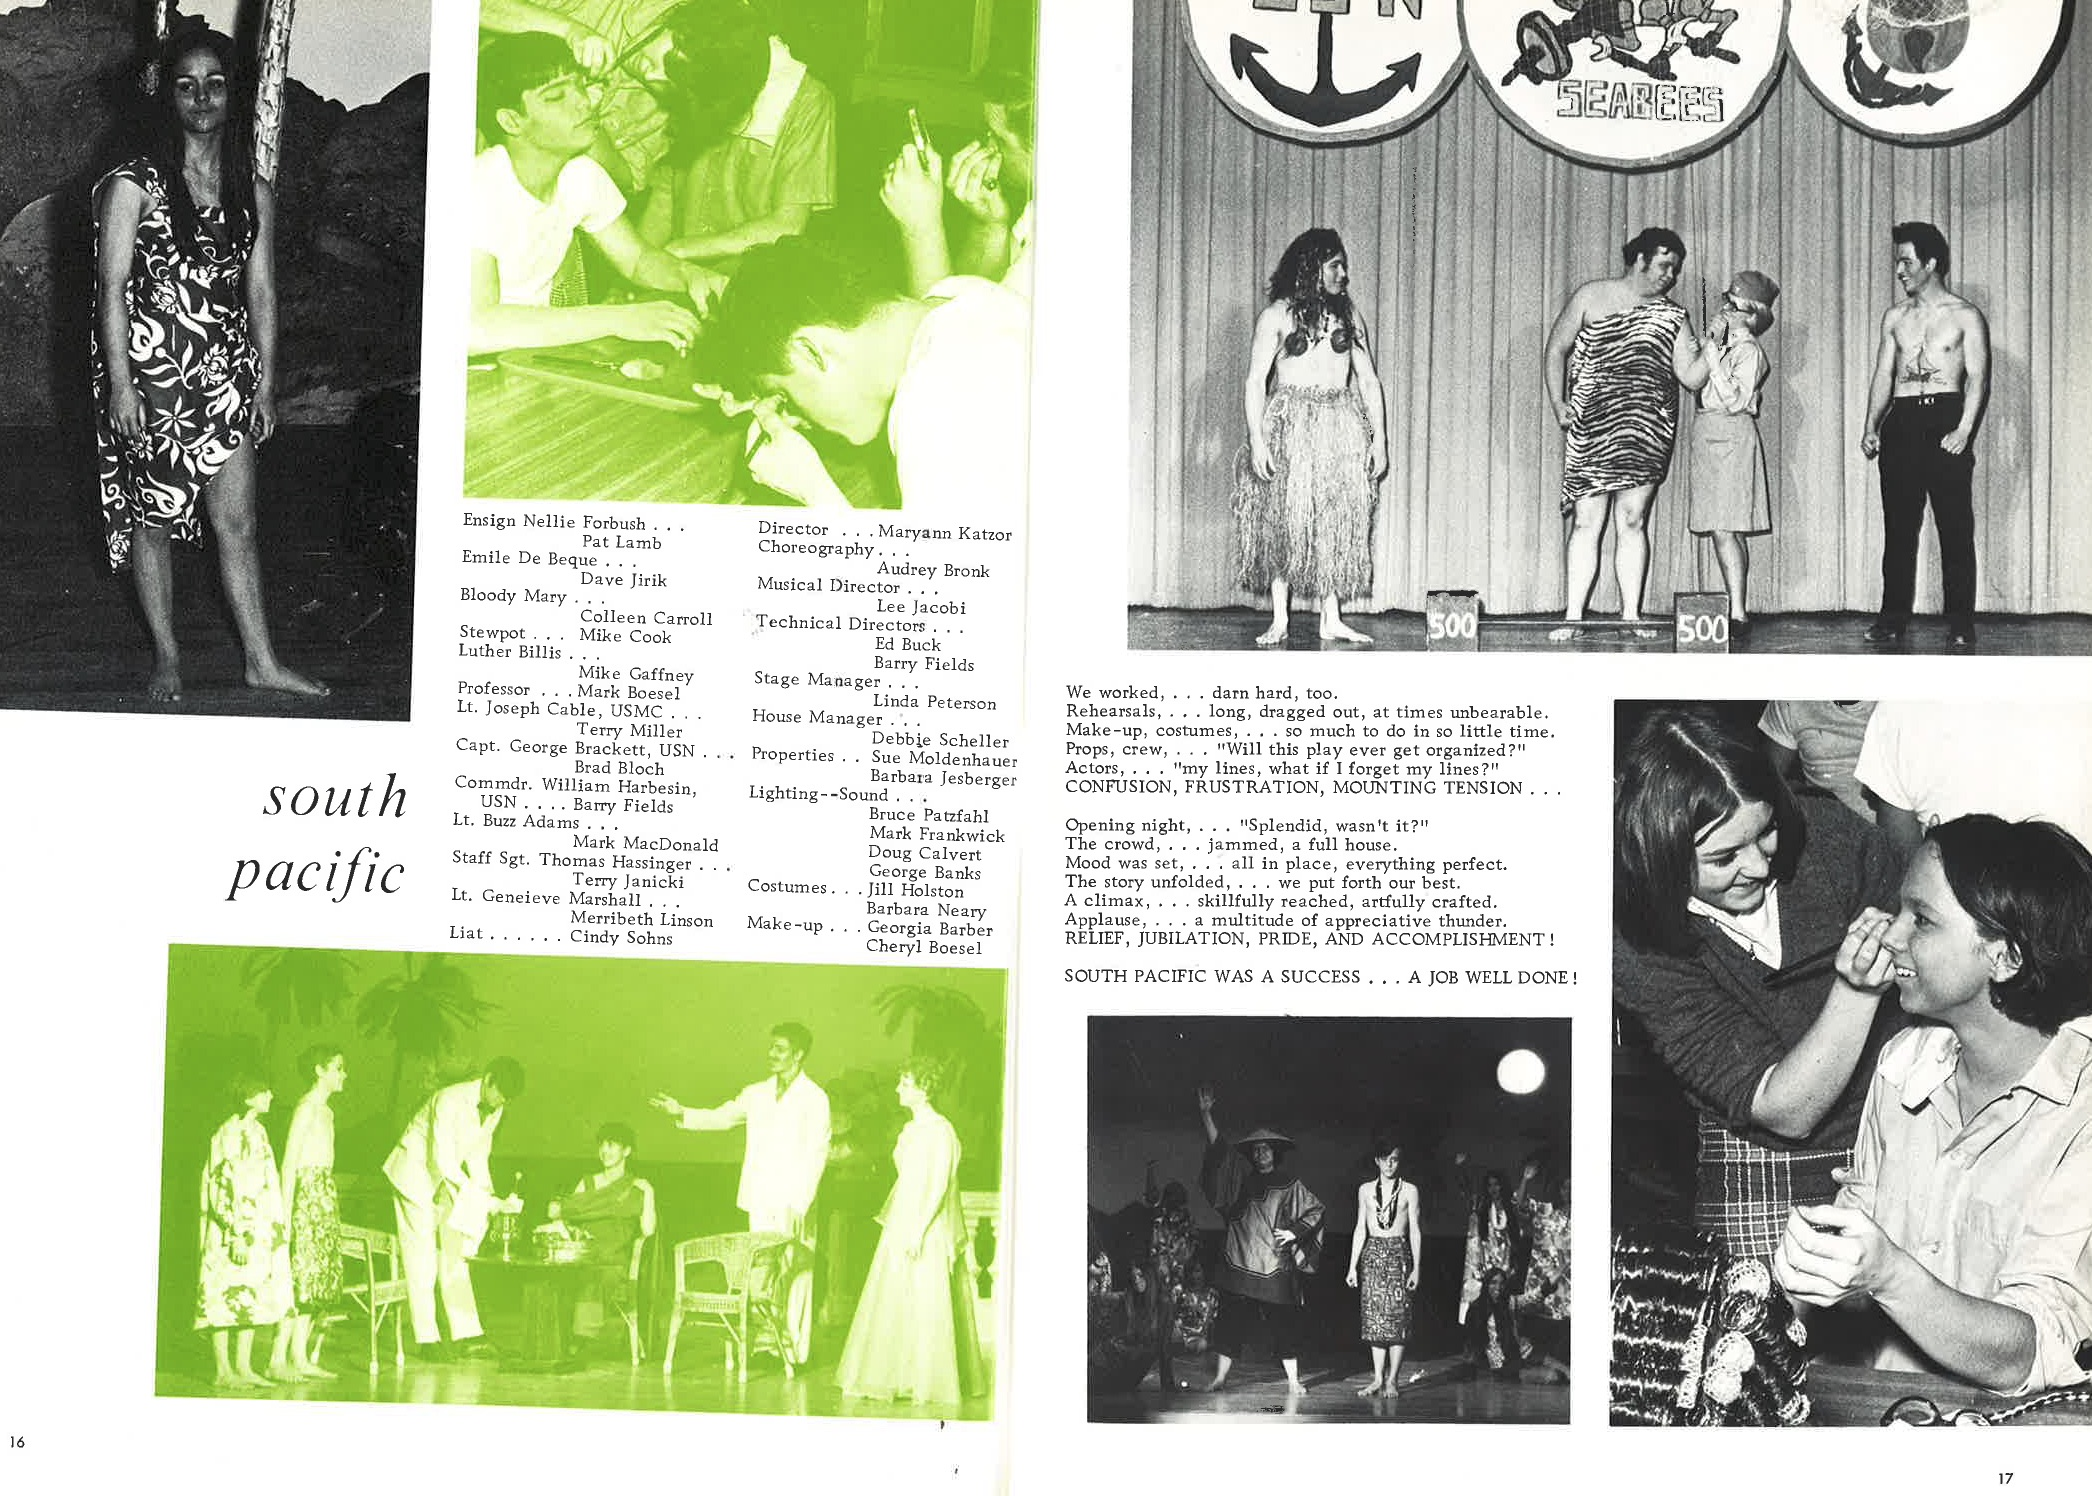 1970_Yearbook_16-17.jpg